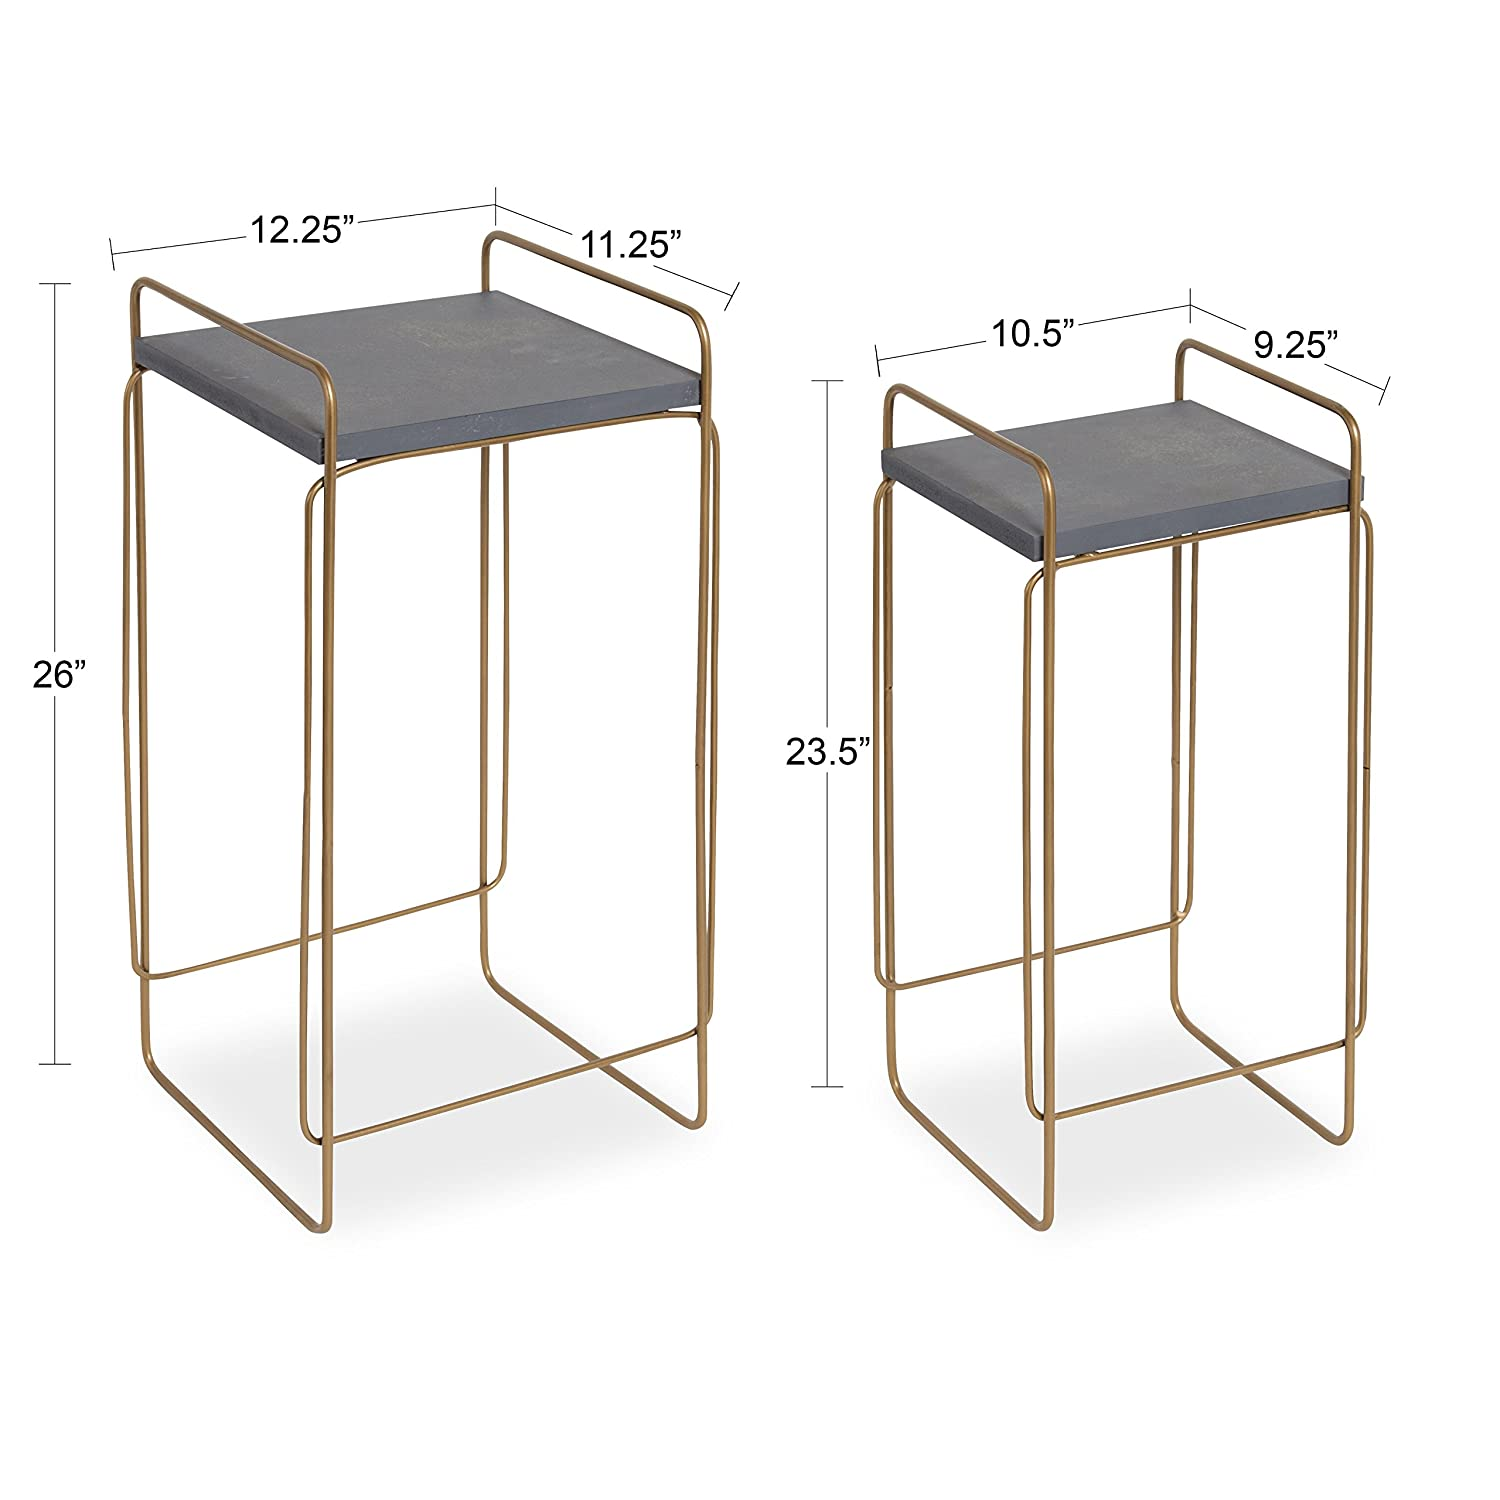 Kate and Laurel Strole 2-Set Modern Metal and Wood Nesting Tables, Concrete Gray top with Matte Gold Geometric Base